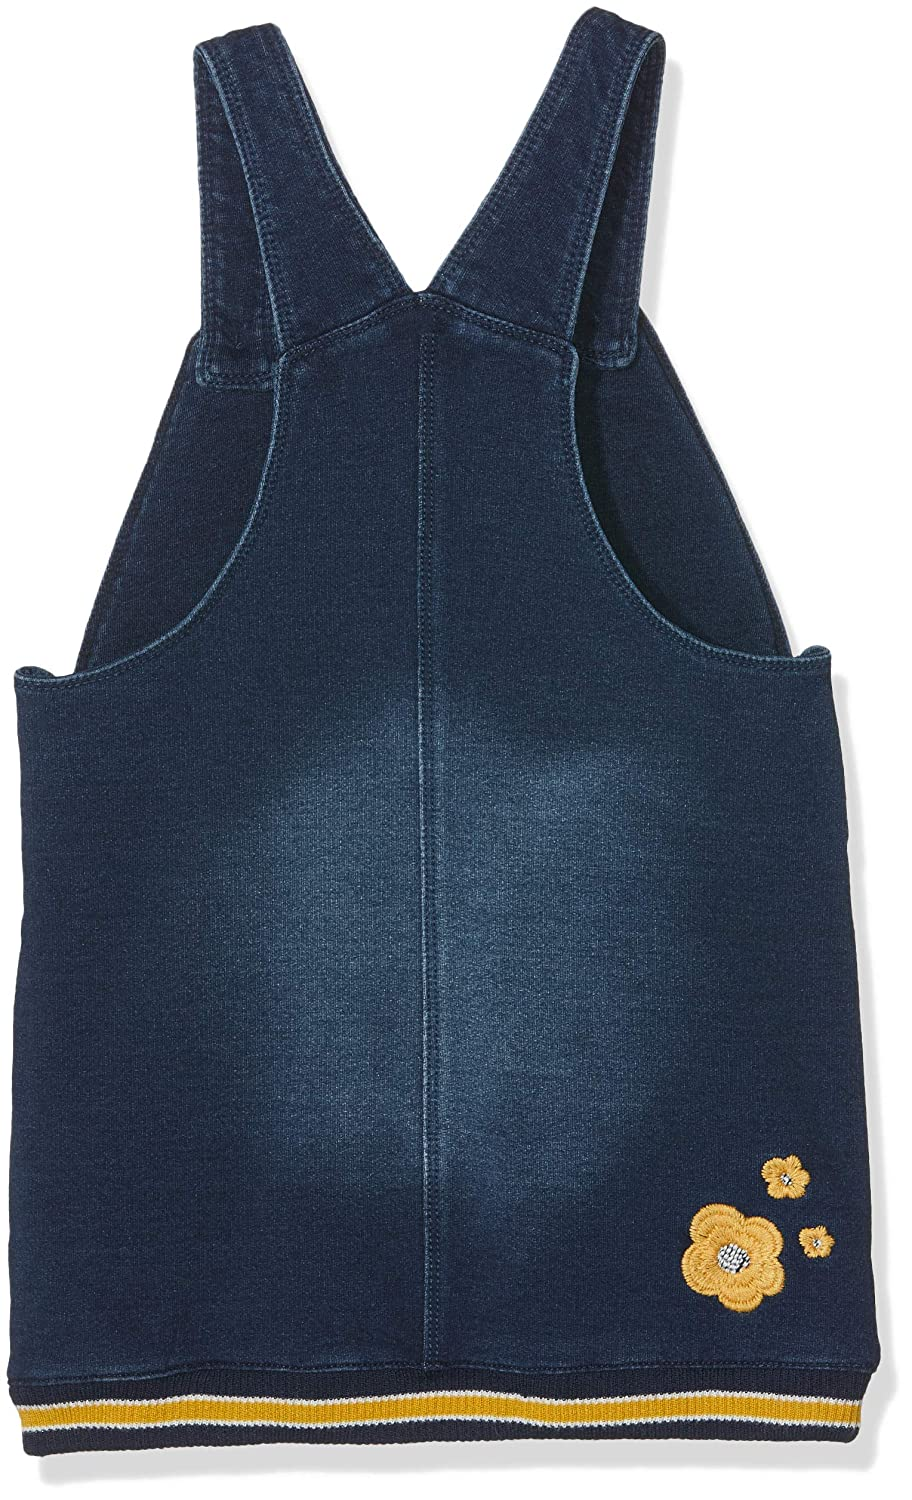 boboli Plush Pinafore Dress Denim For Baby Girl Conjunto de Ropa Unisex beb/é